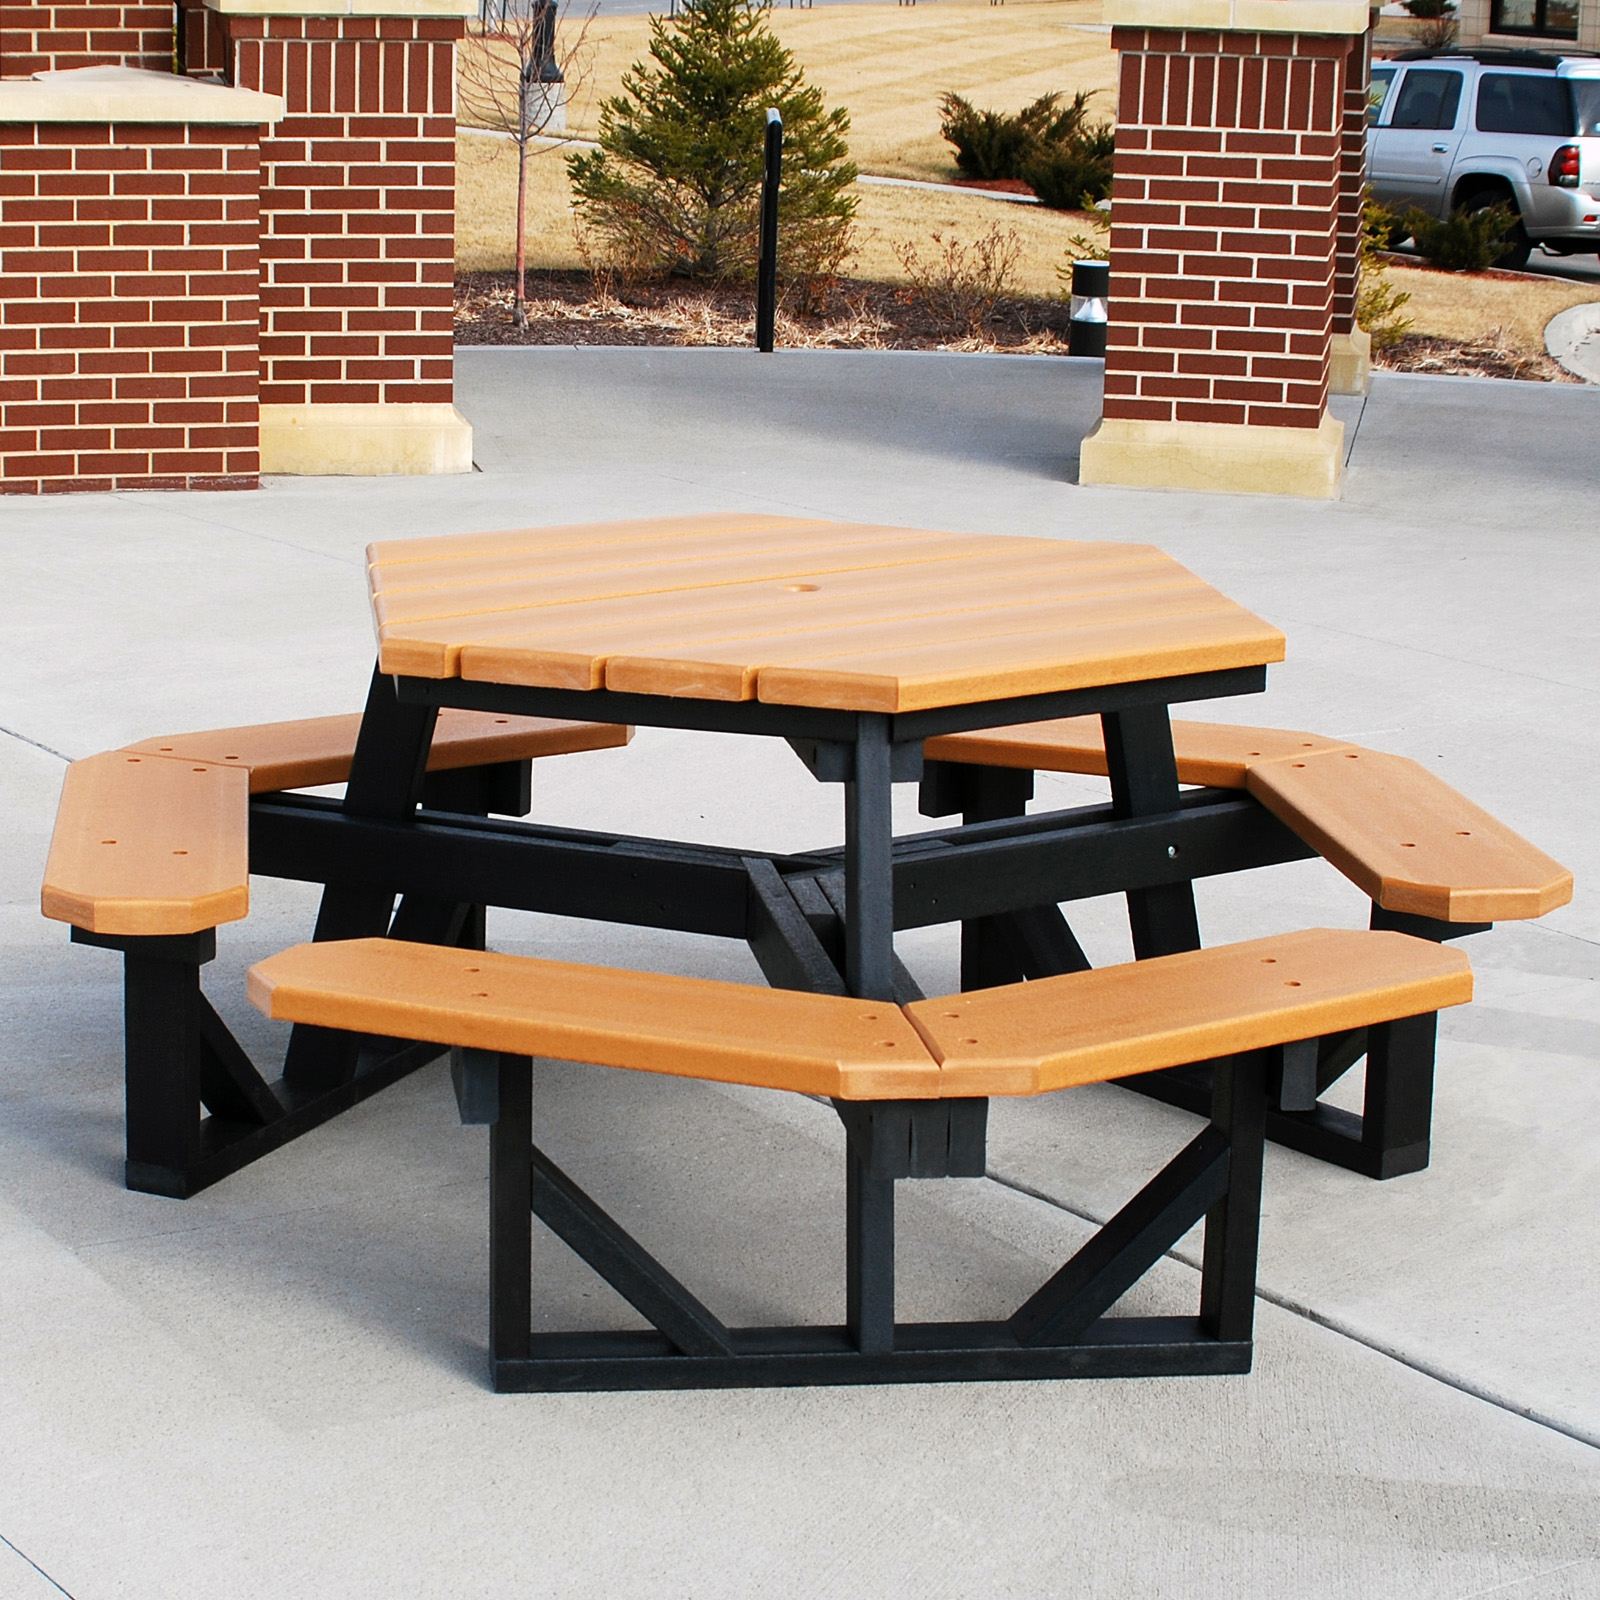 Picnic table round wooden picnic tables portable wooden picnic table - Jayhawk Plastics Hex Recycled Plastic Commercial Picnic Table Hayneedle